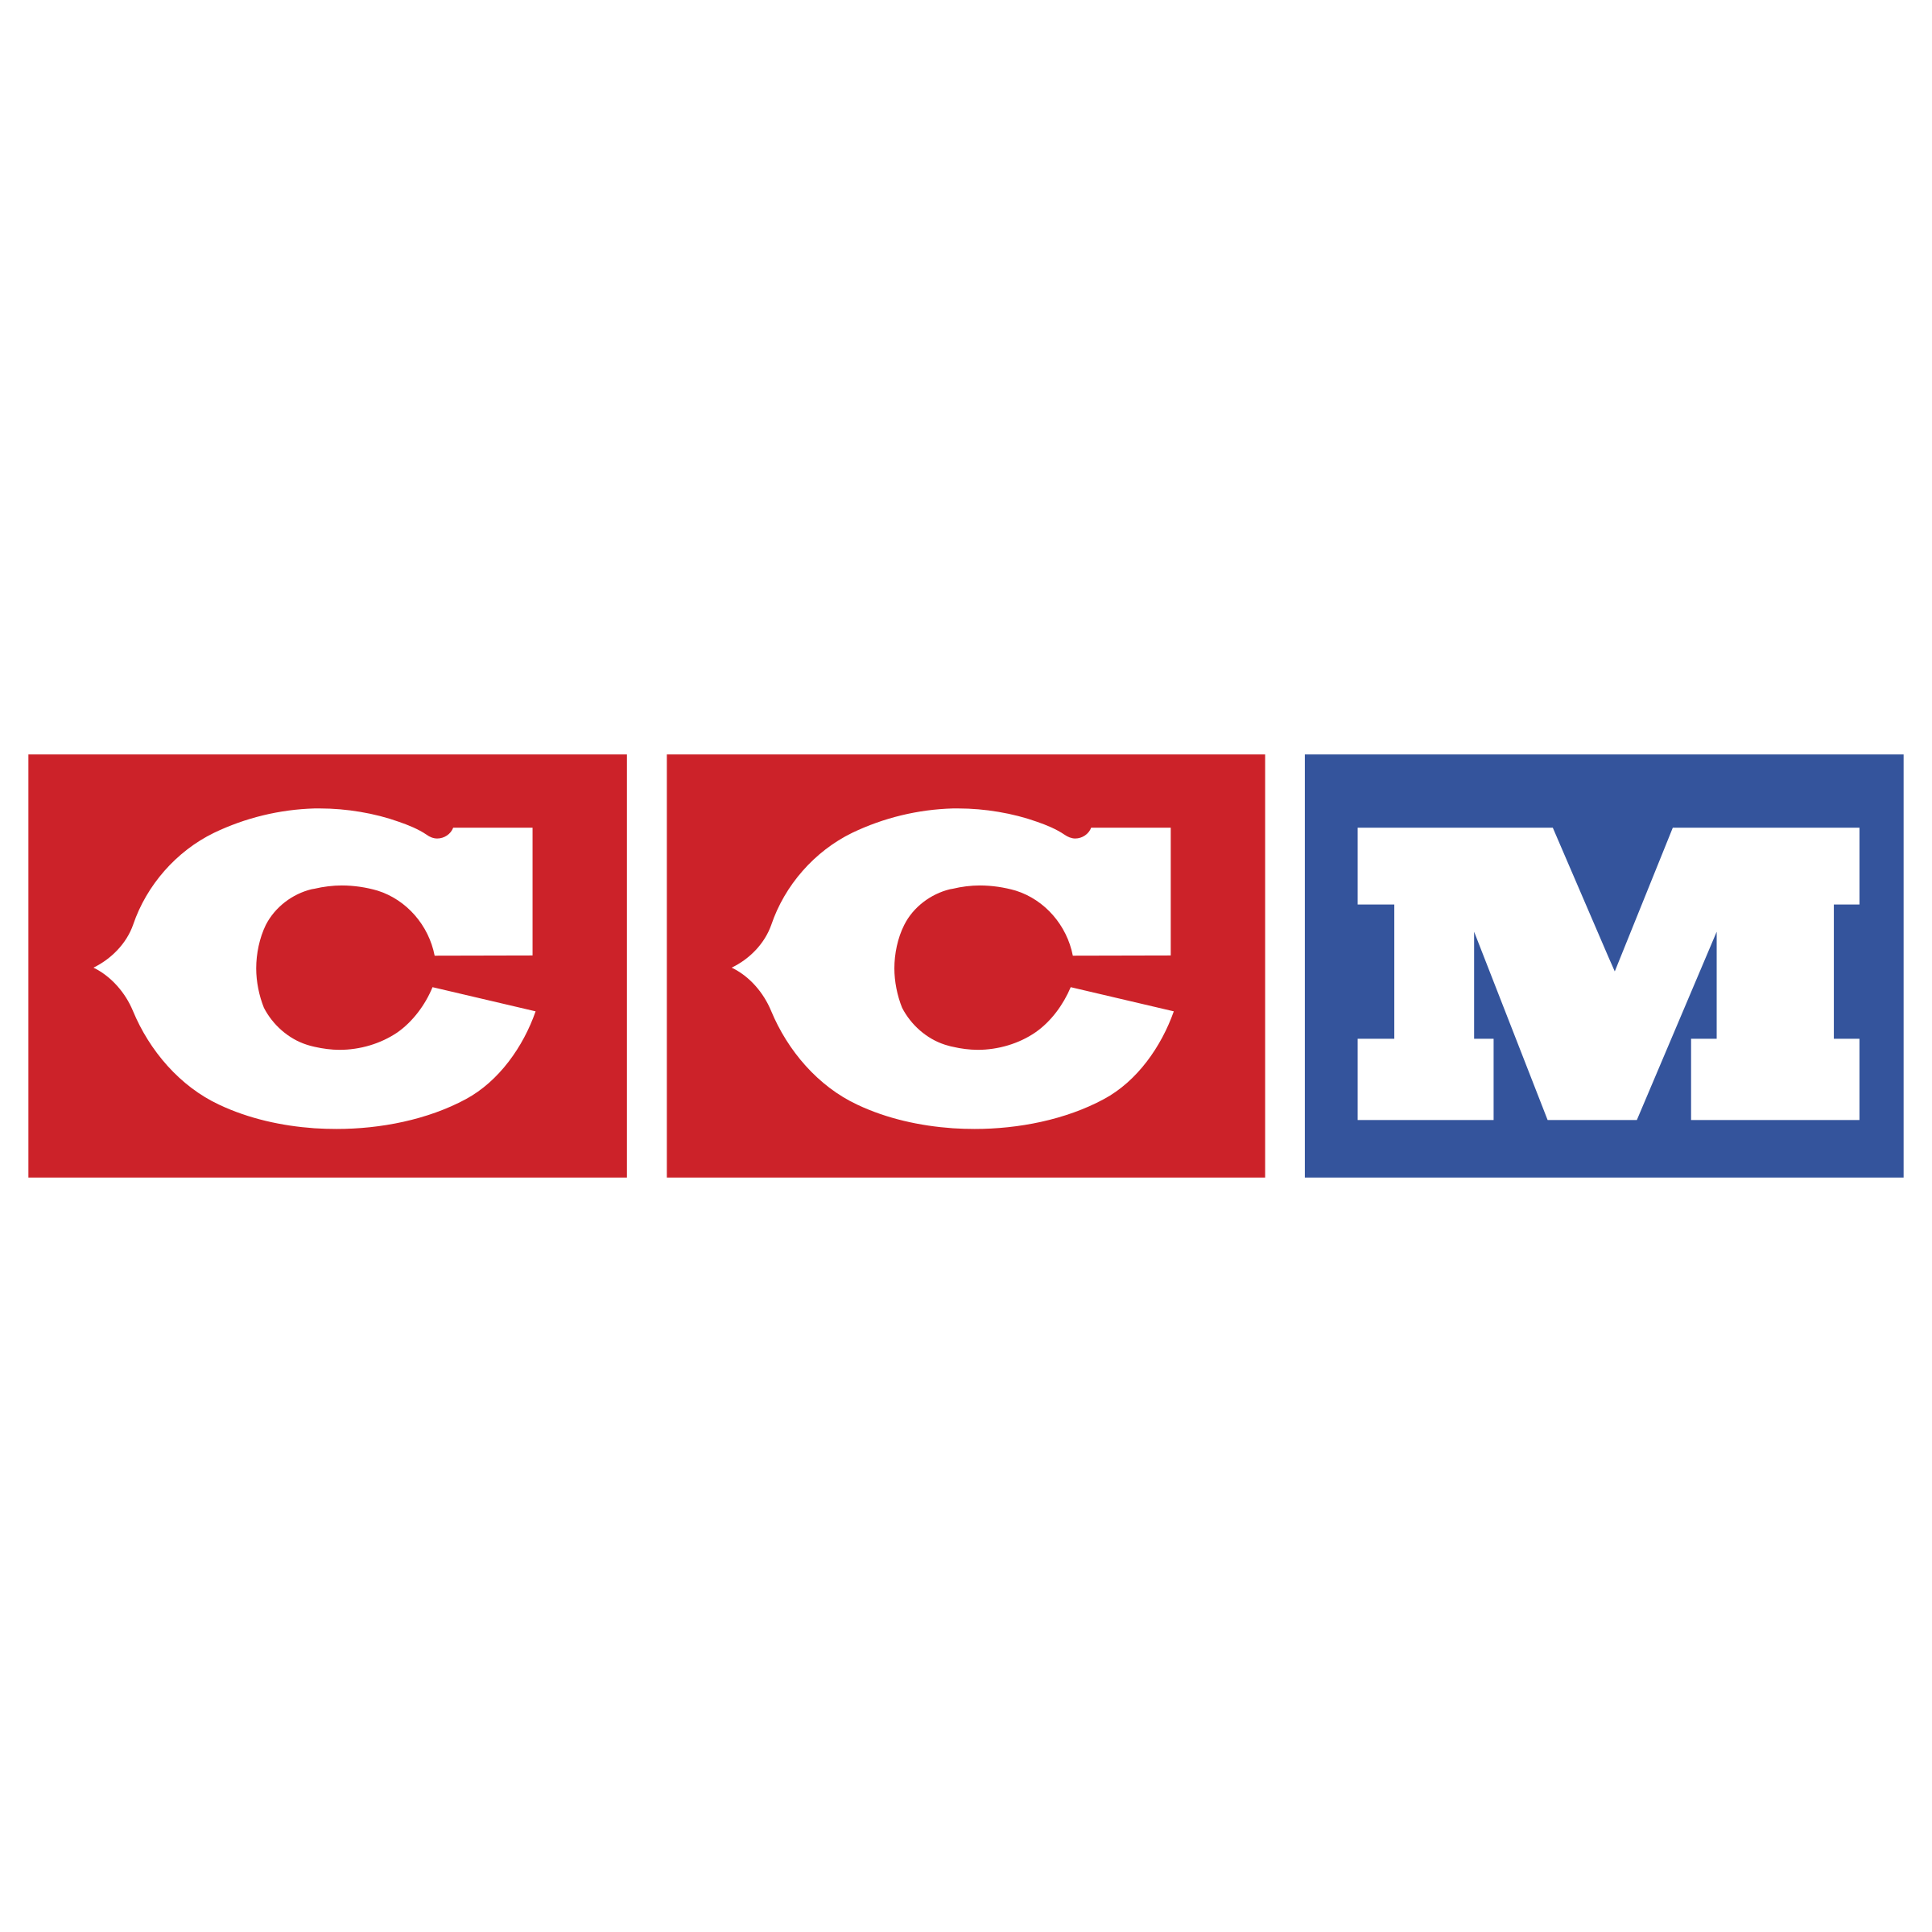 CCM 1020 Logo PNG Transparent & SVG Vector.